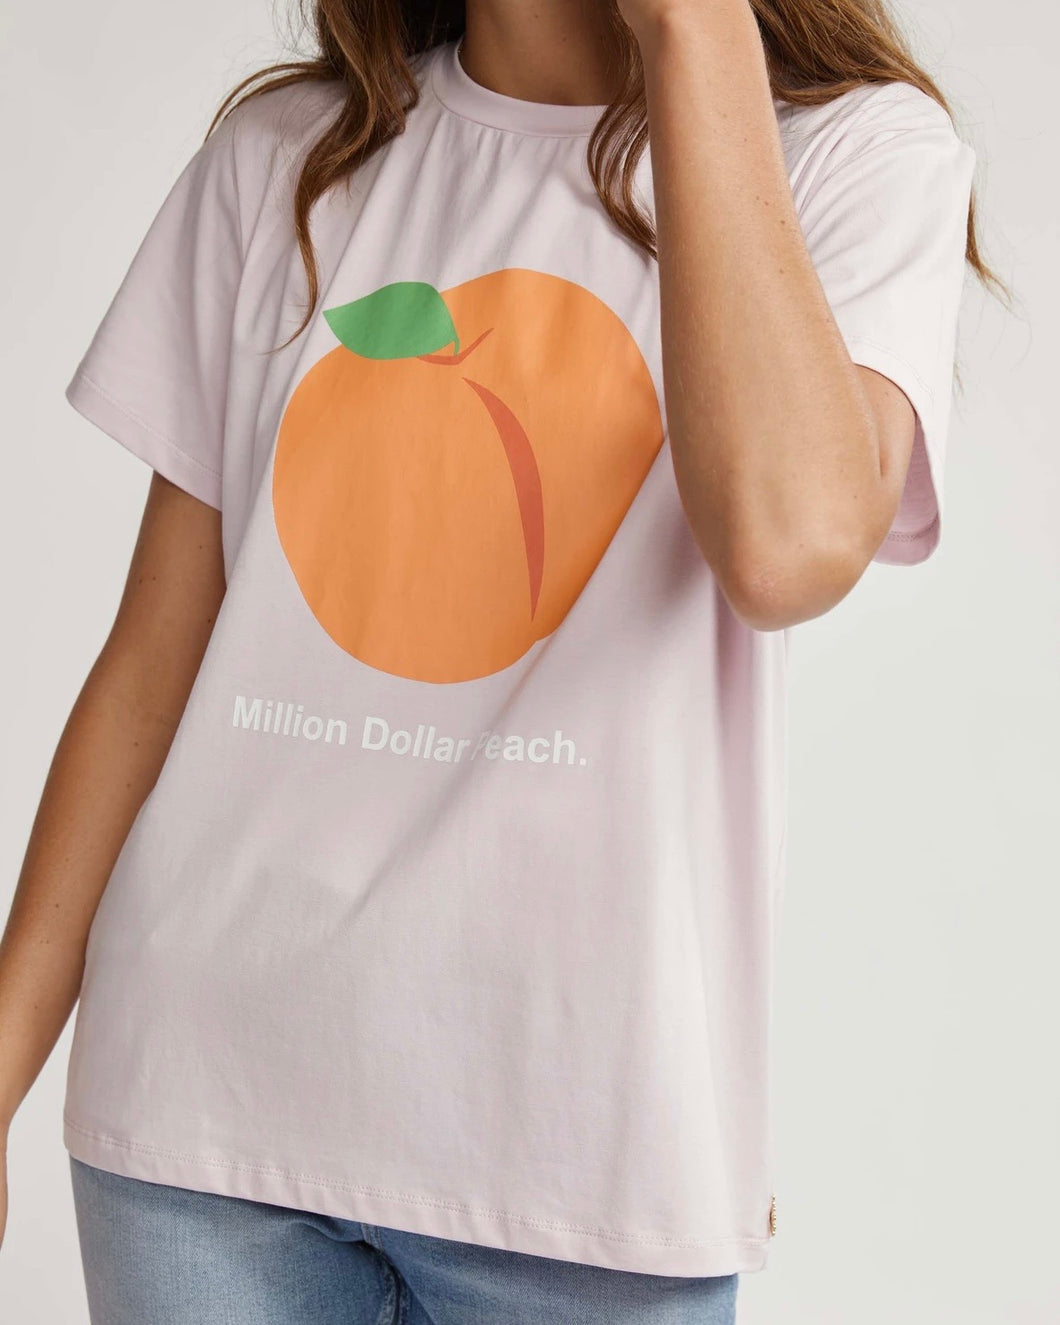 Million Dollar Peach Tee by Binny